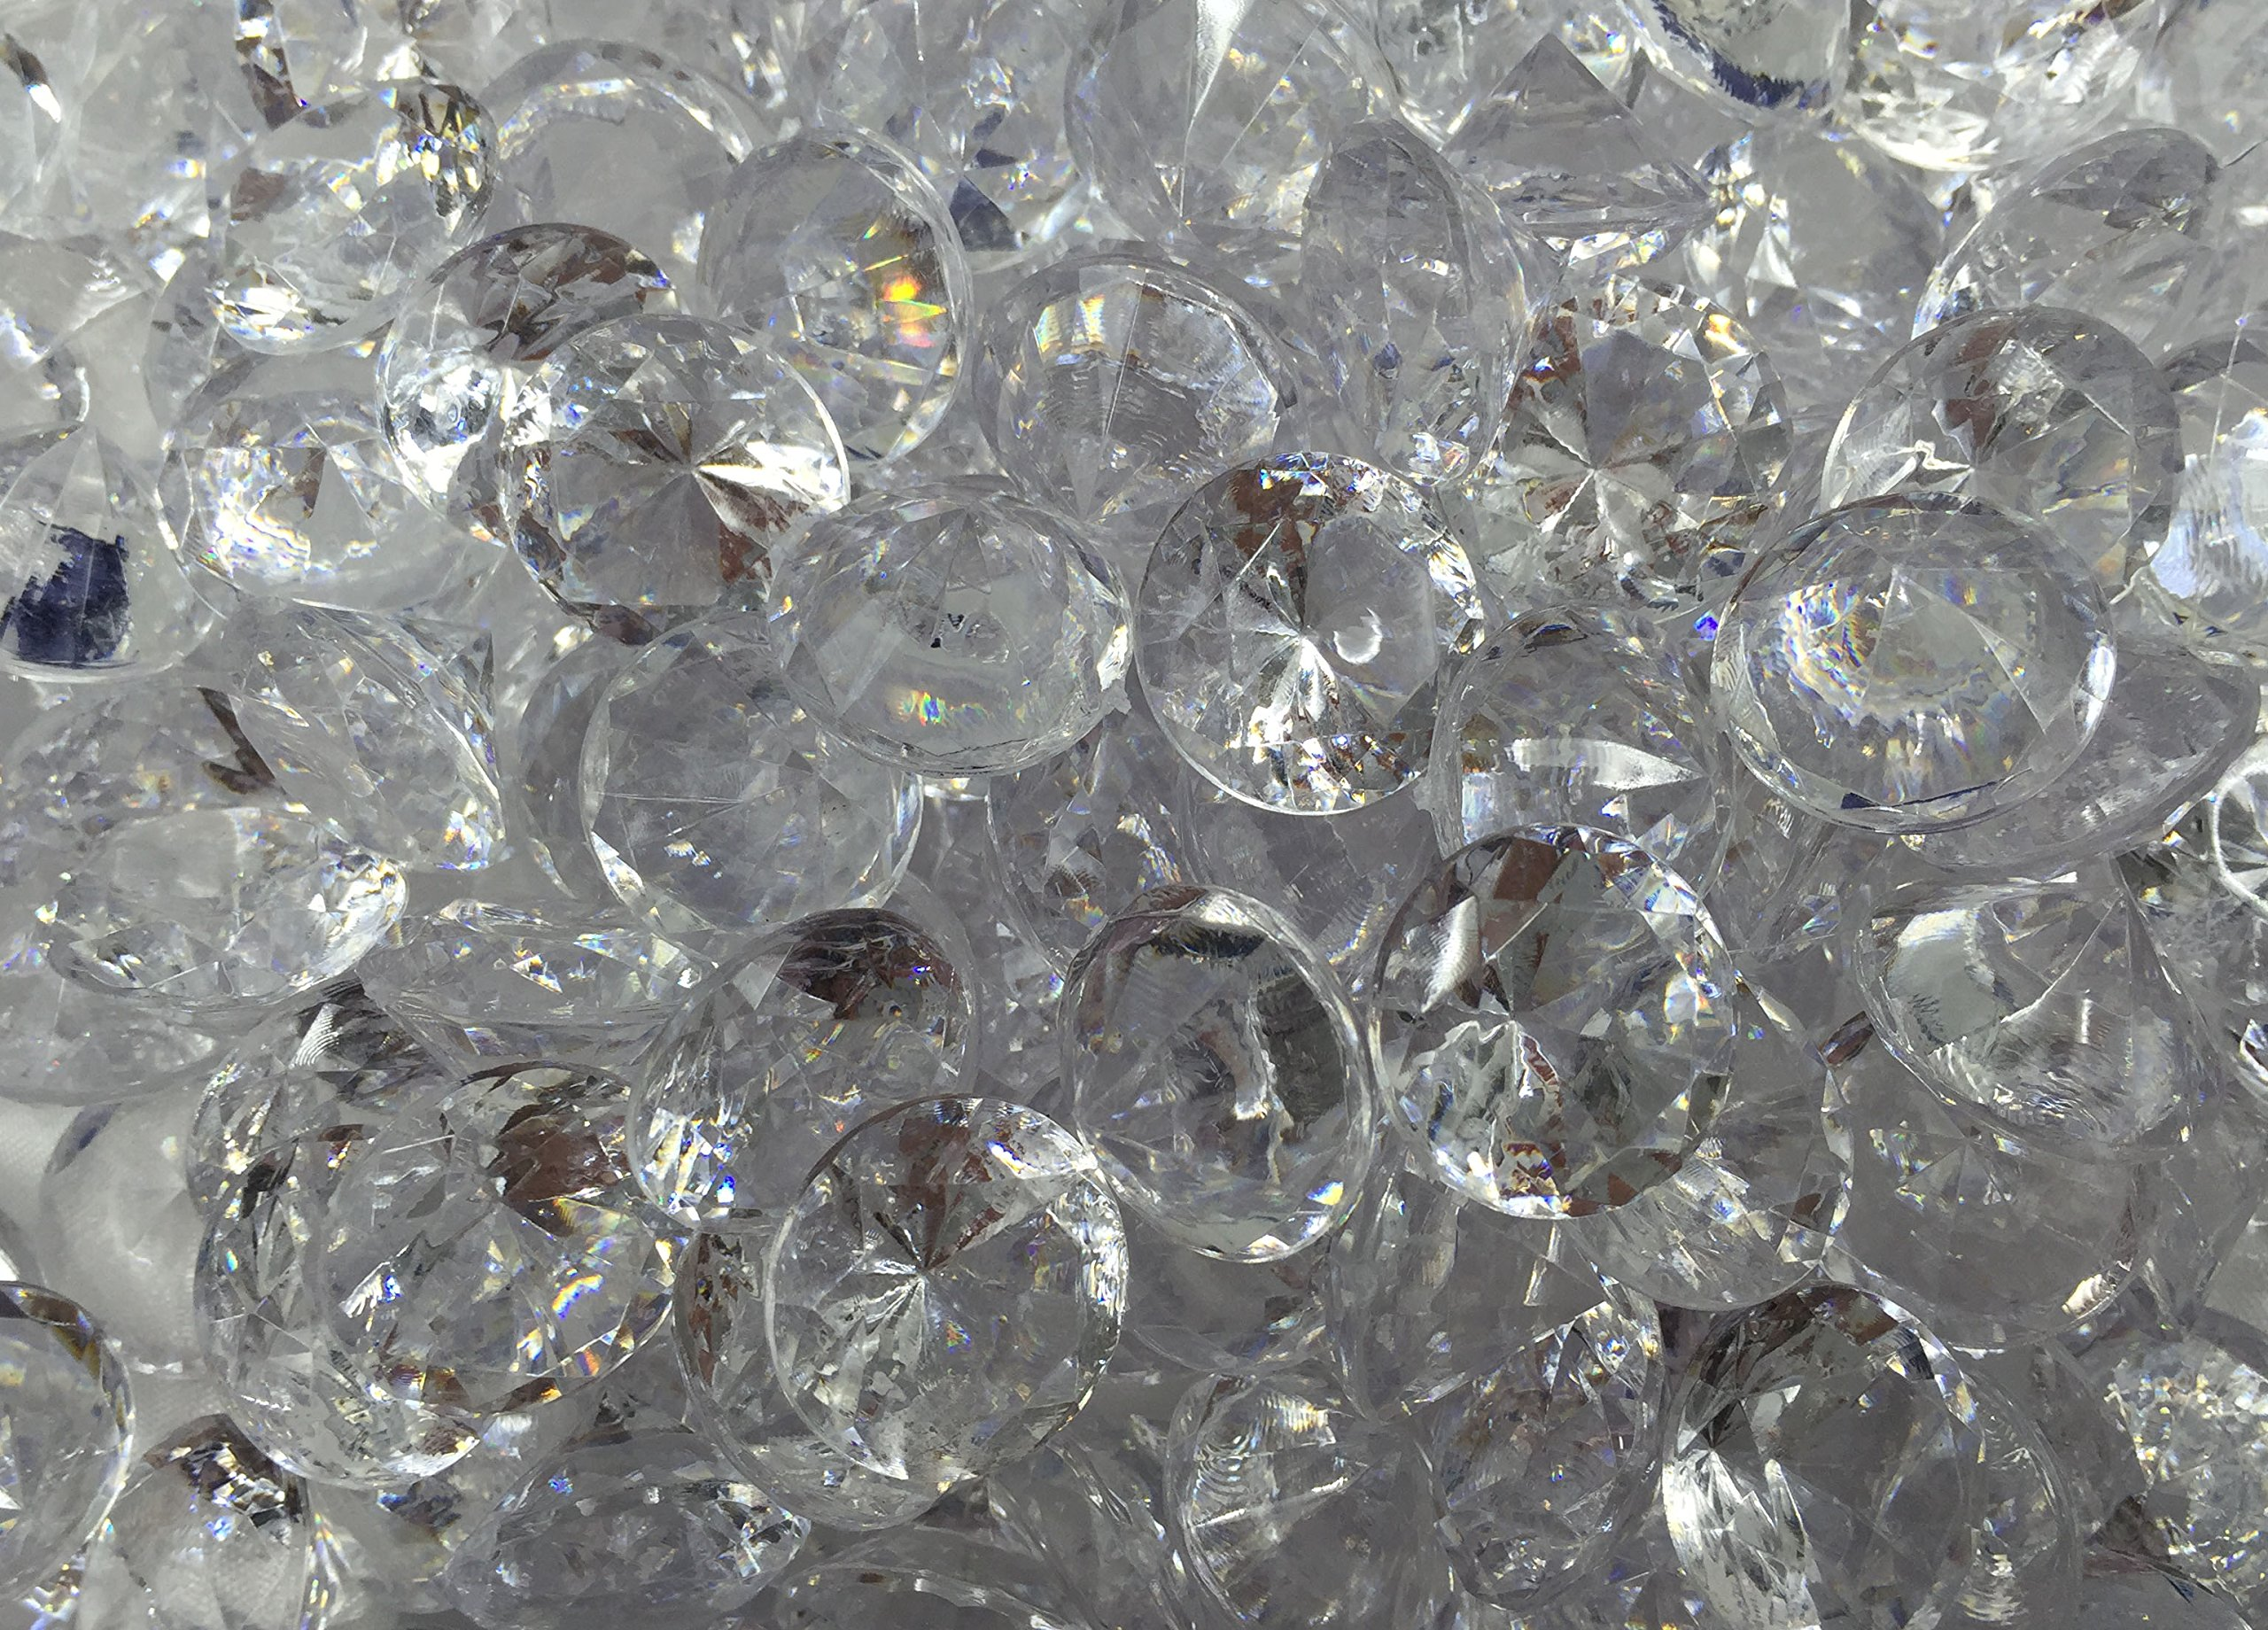 480+ Pieces 20mm Crystal Clear Acrylic Diamond Shape Jewels for Party Decoration ,Event ,Wedding , Vase Fillers, Arts & Crafts by SunRise (Image #5)